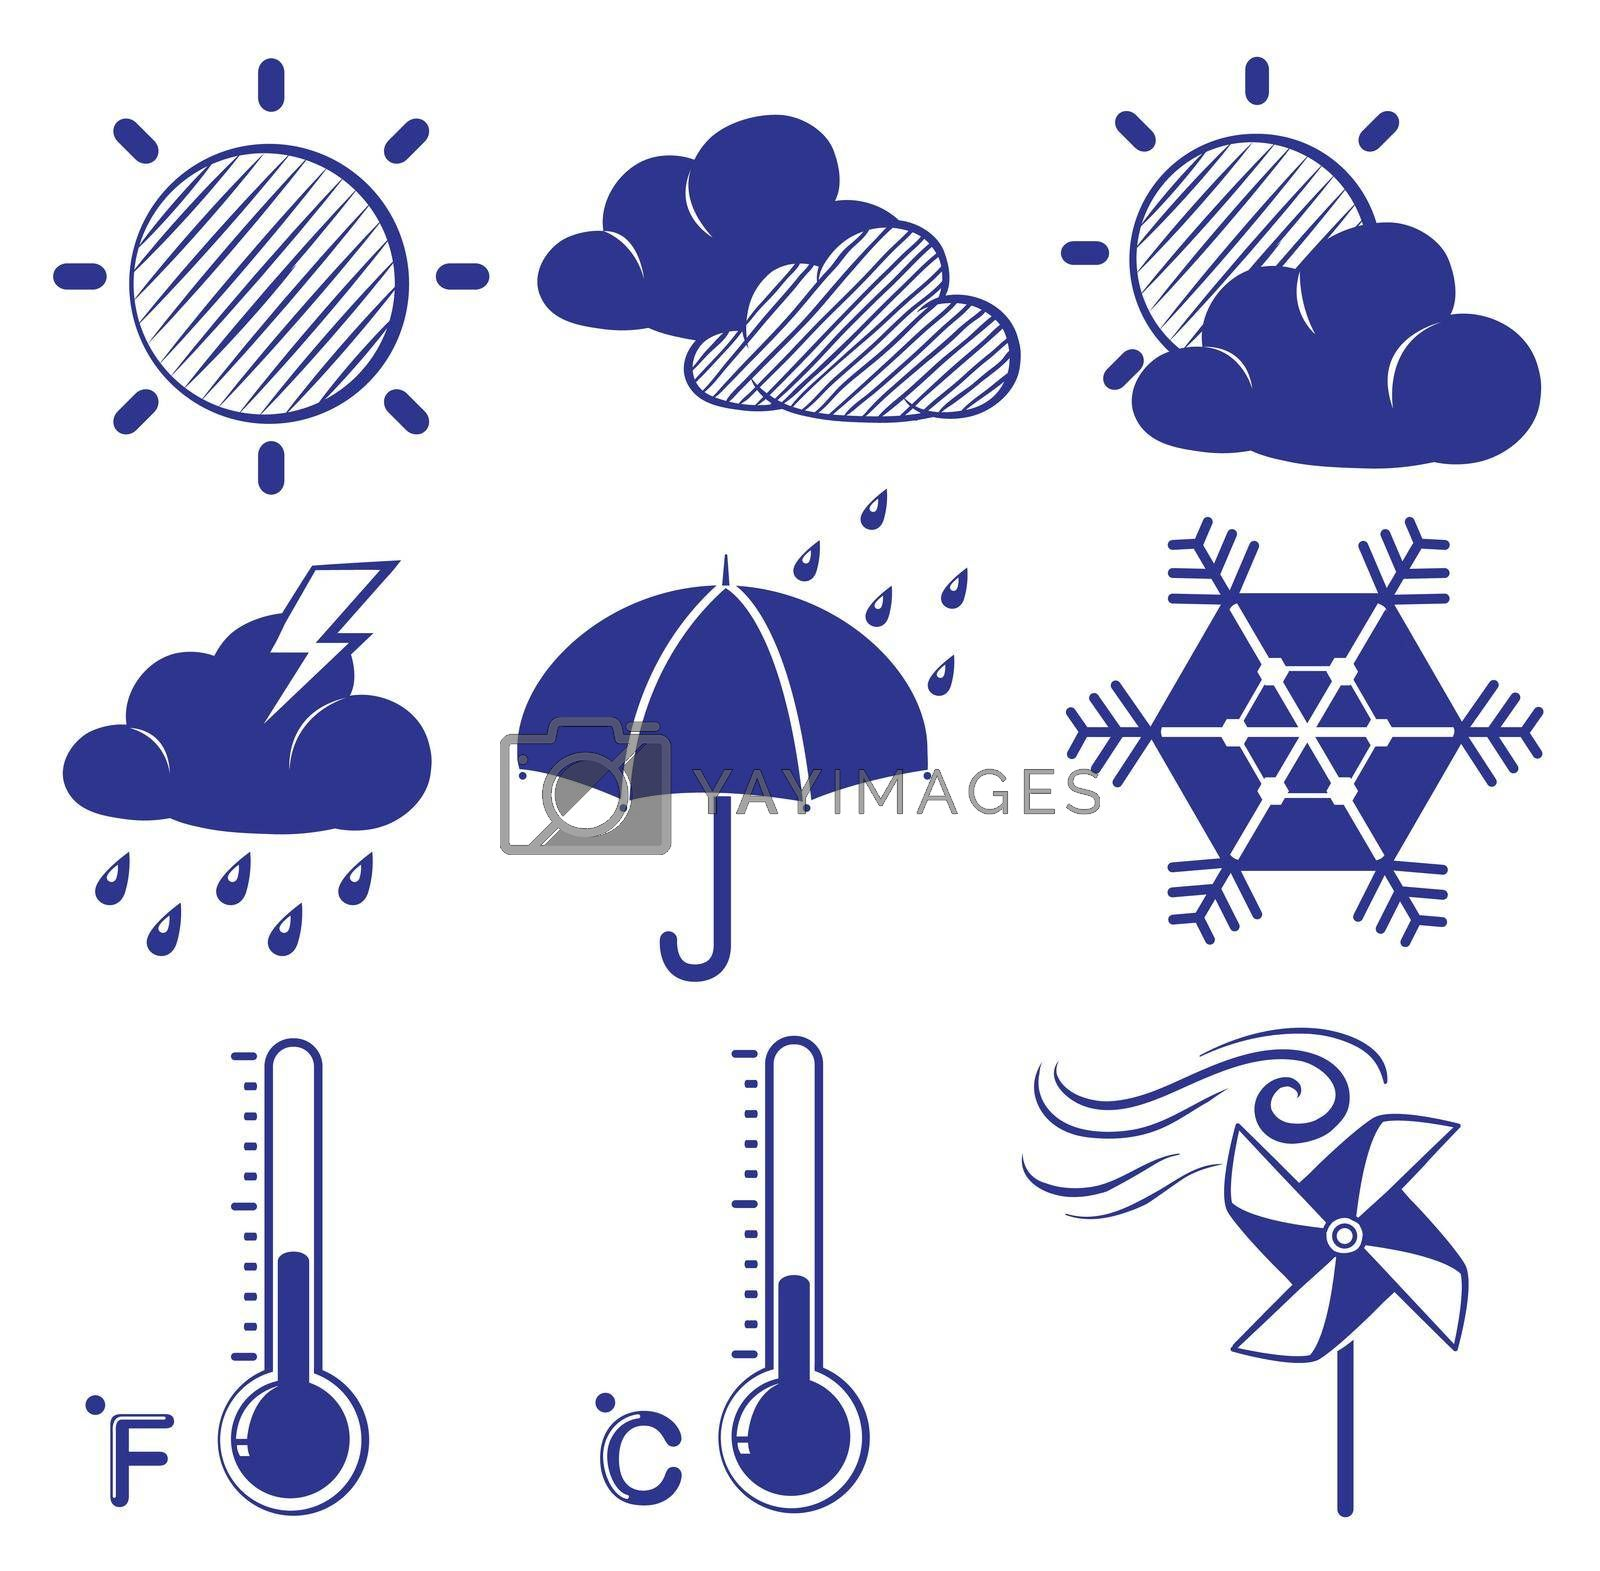 Royalty free image of Different weather conditions by iimages